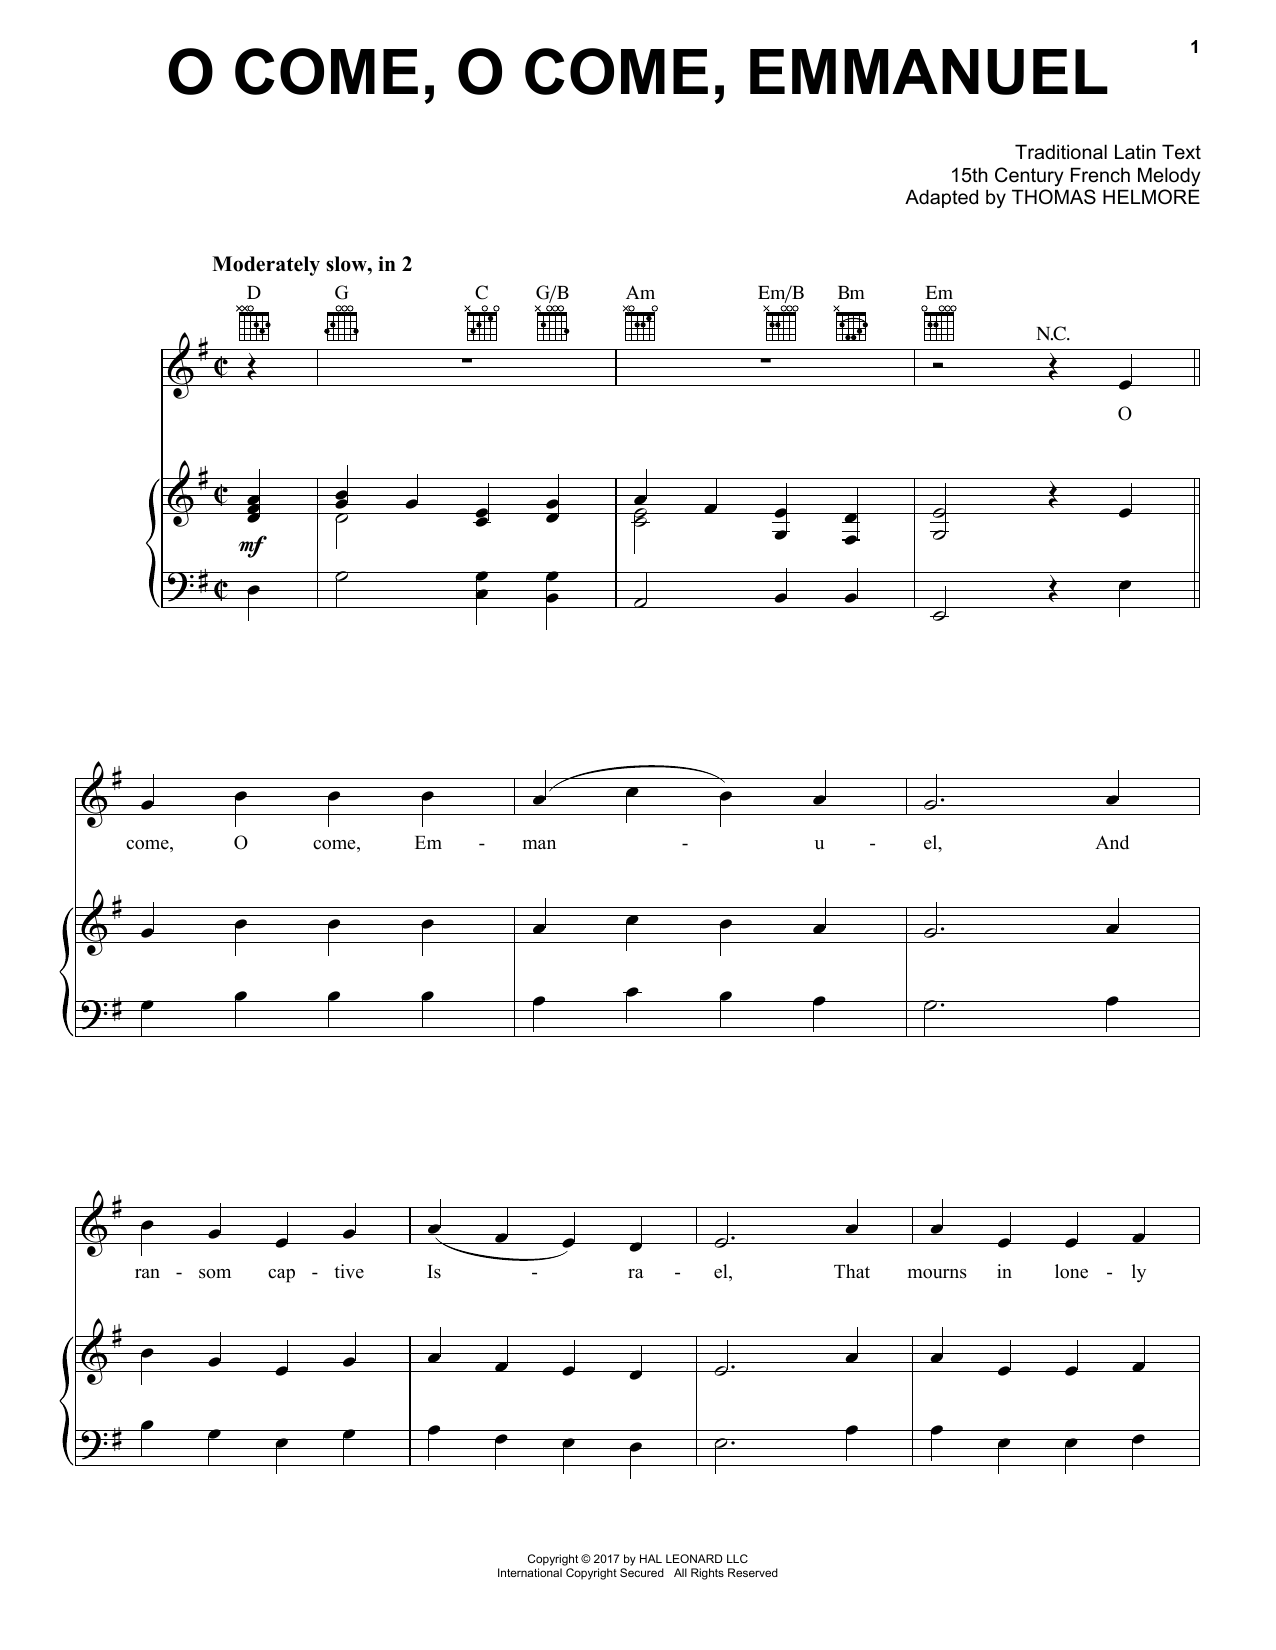 Traditional Latin Text O Come, O Come, Emmanuel sheet music notes and chords. Download Printable PDF.